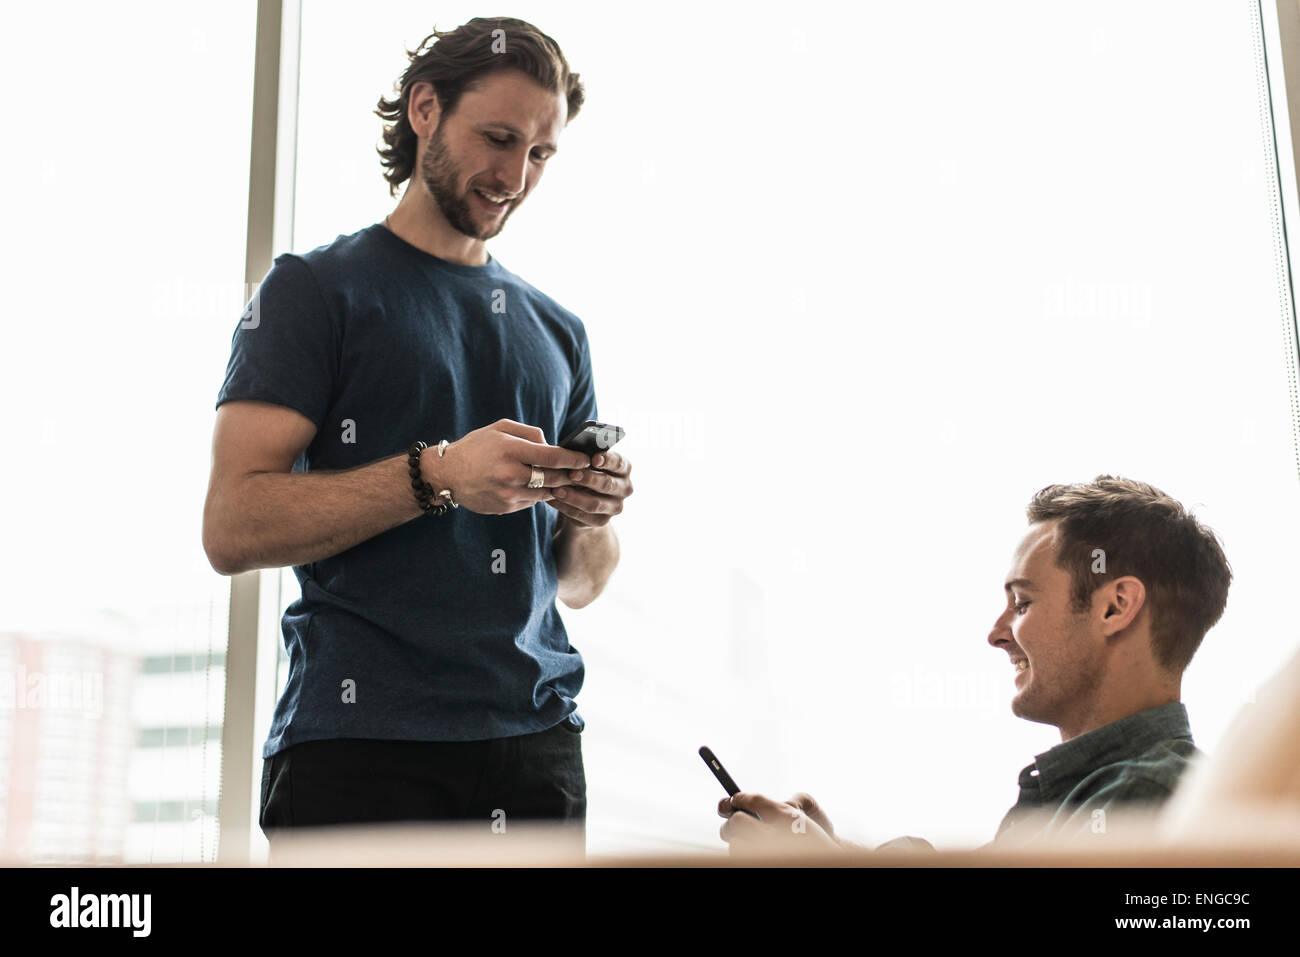 Two men in an office, checking their smart phones. - Stock Image